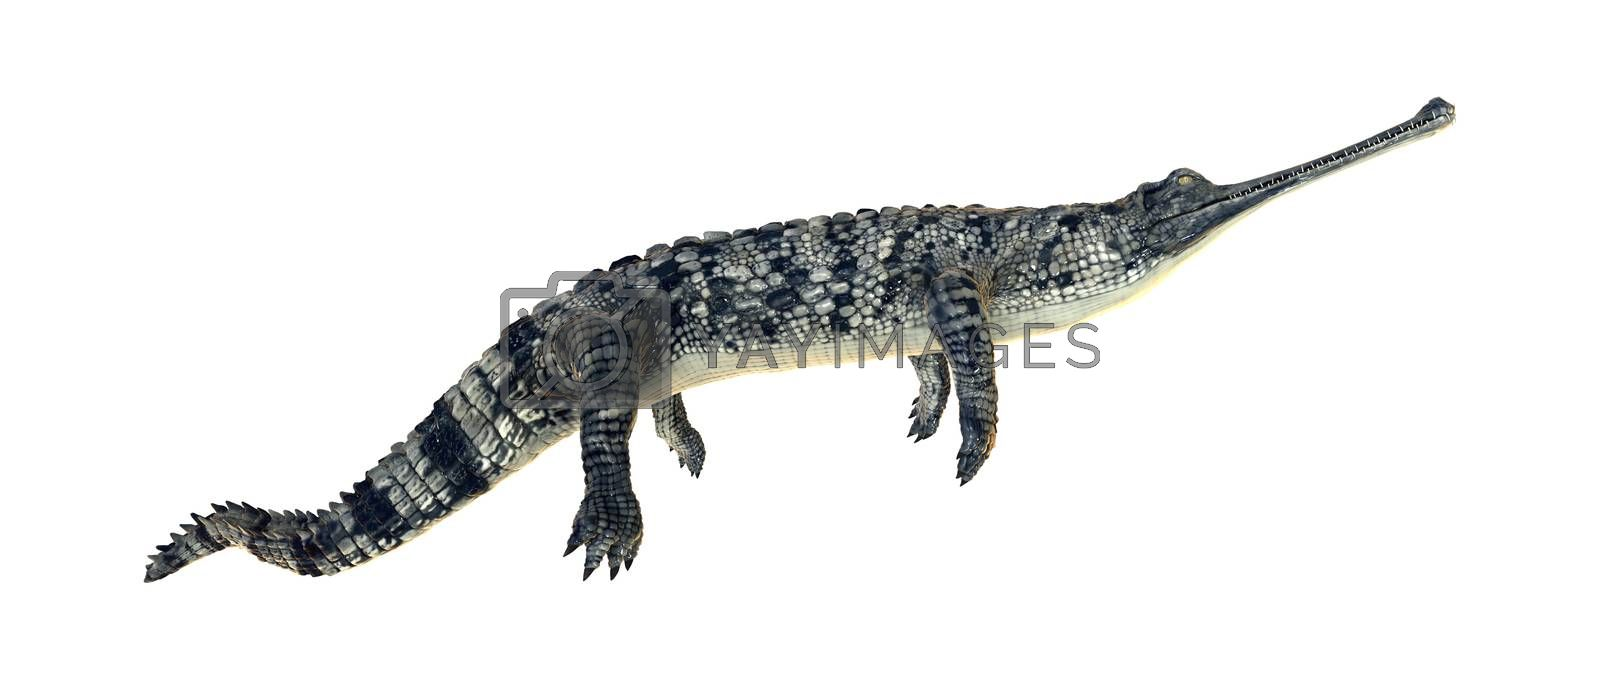 3D digital render of a gharial or Gavialis gangeticus, or gavial, or fish-eating crocodile isolated on white background